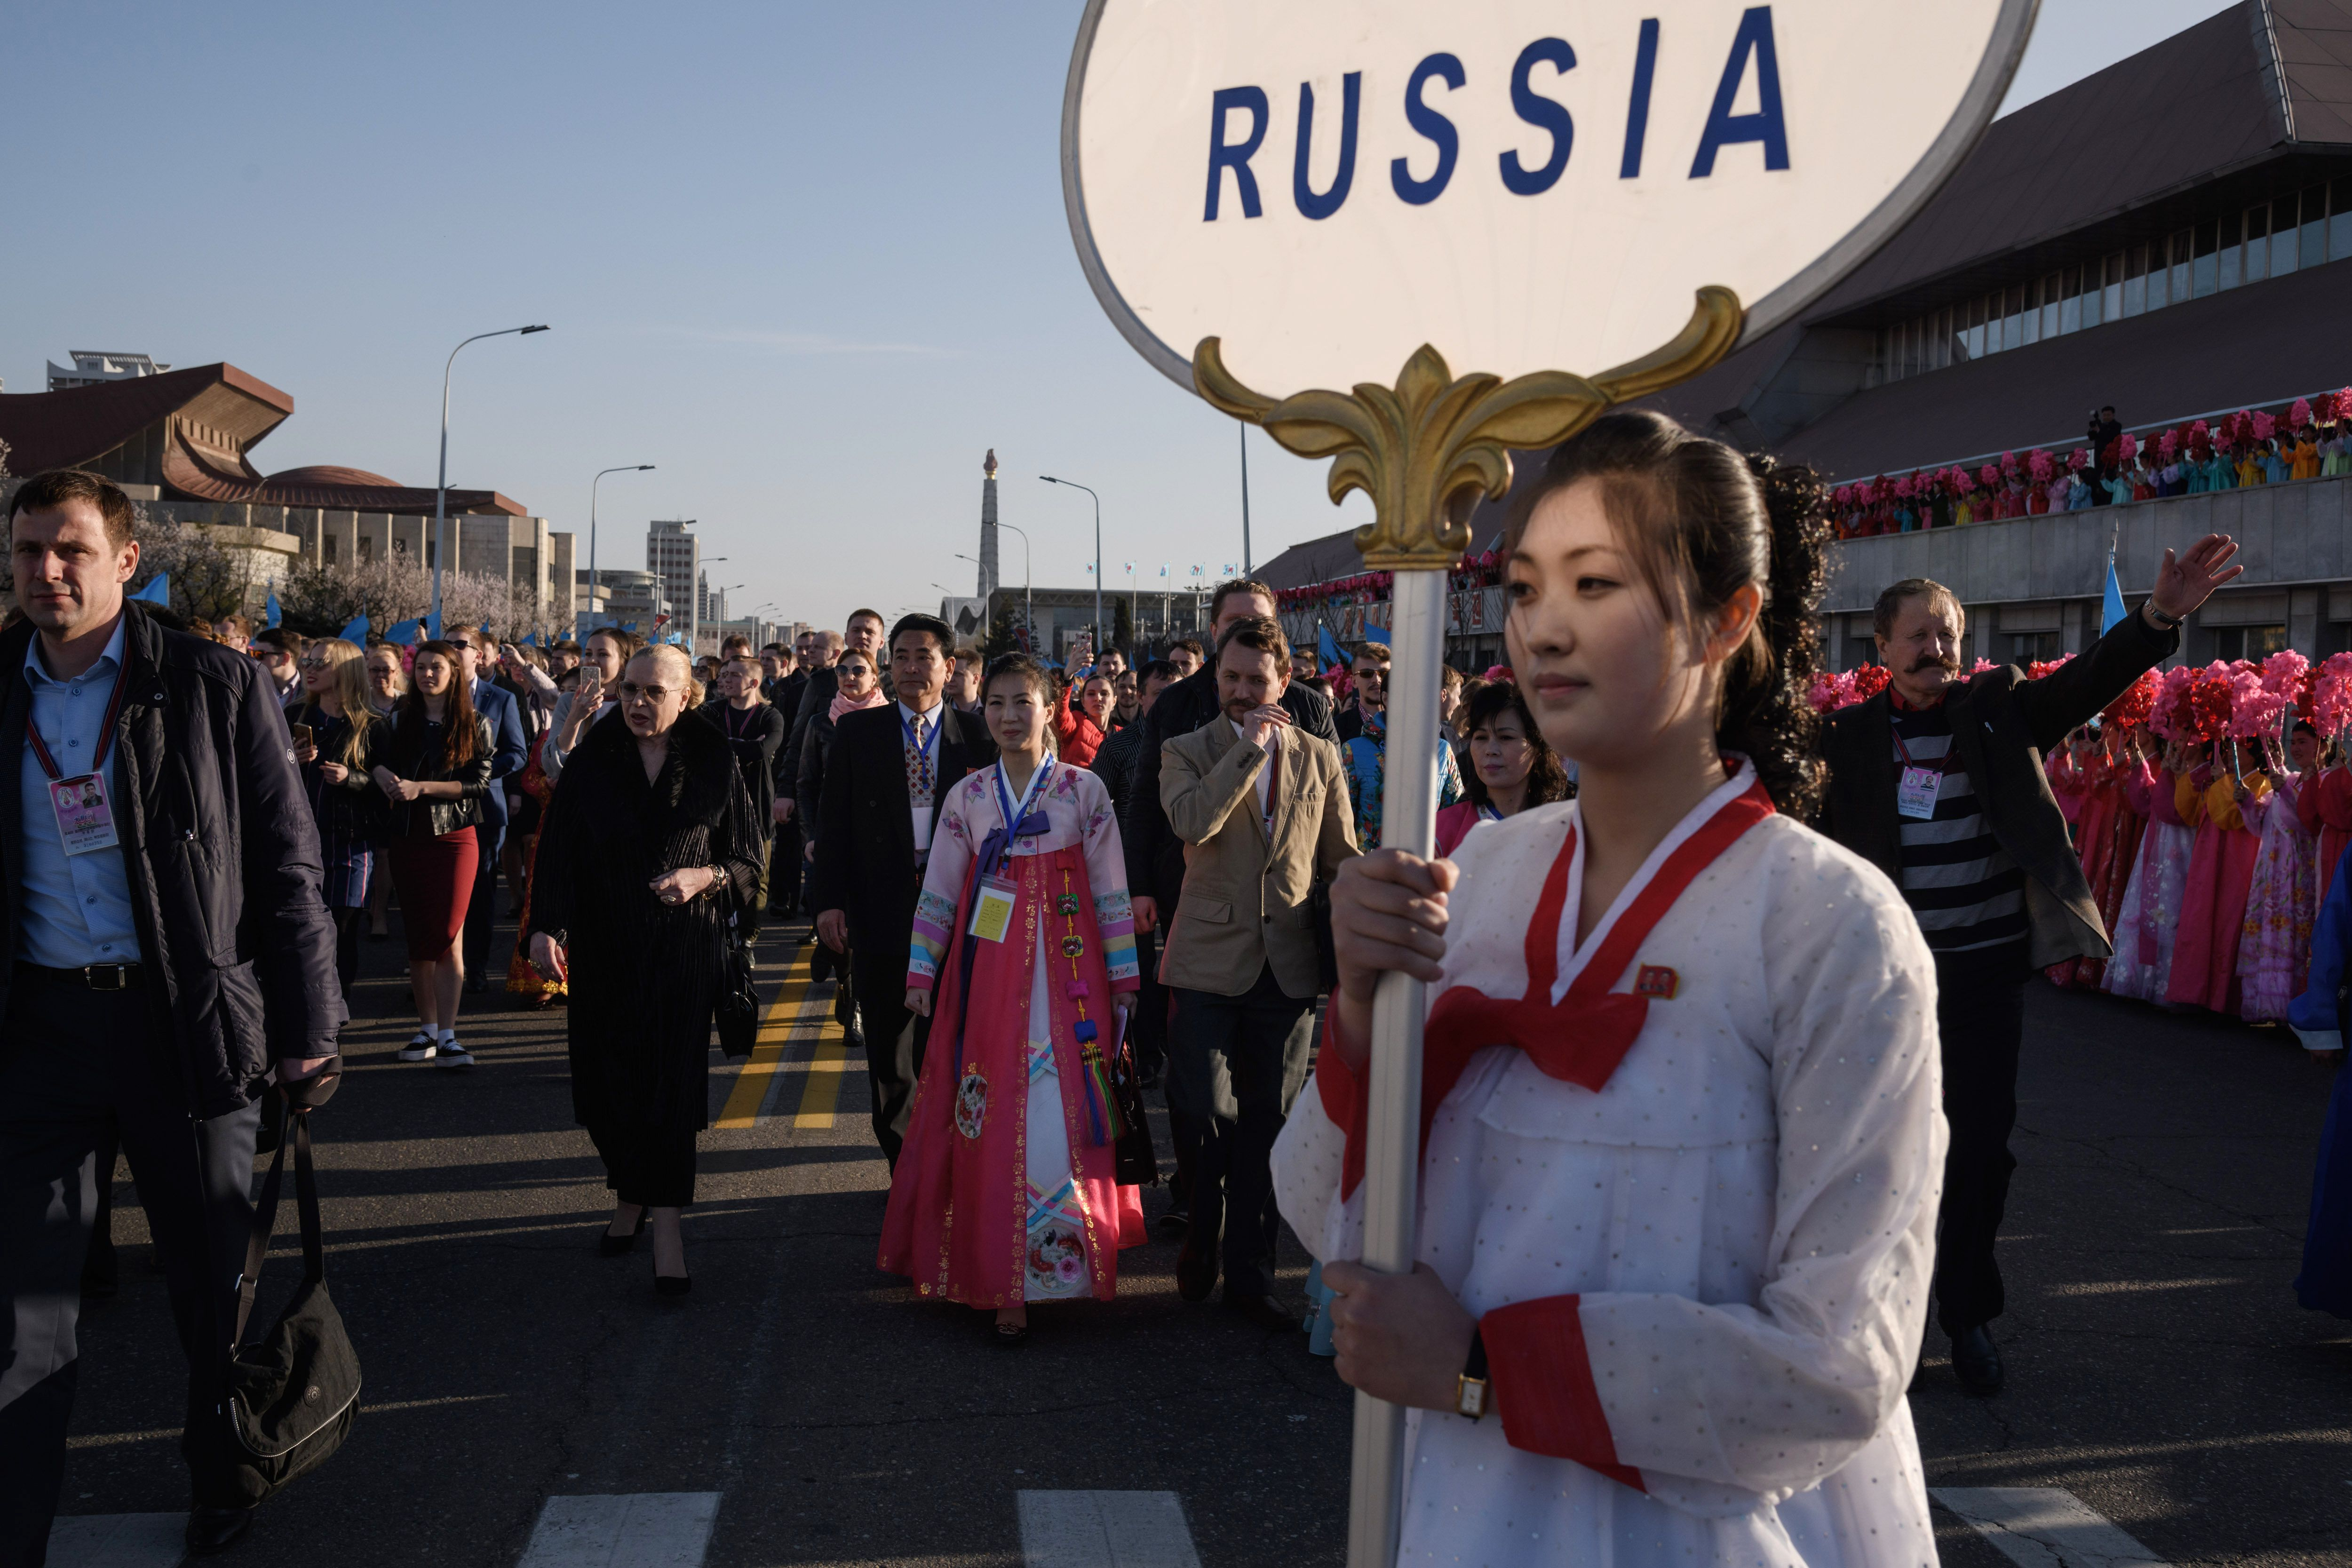 A performance troupe from Russia arrives in Pyongyang on April 12, 2018 during a cultural exchange and arts festival.